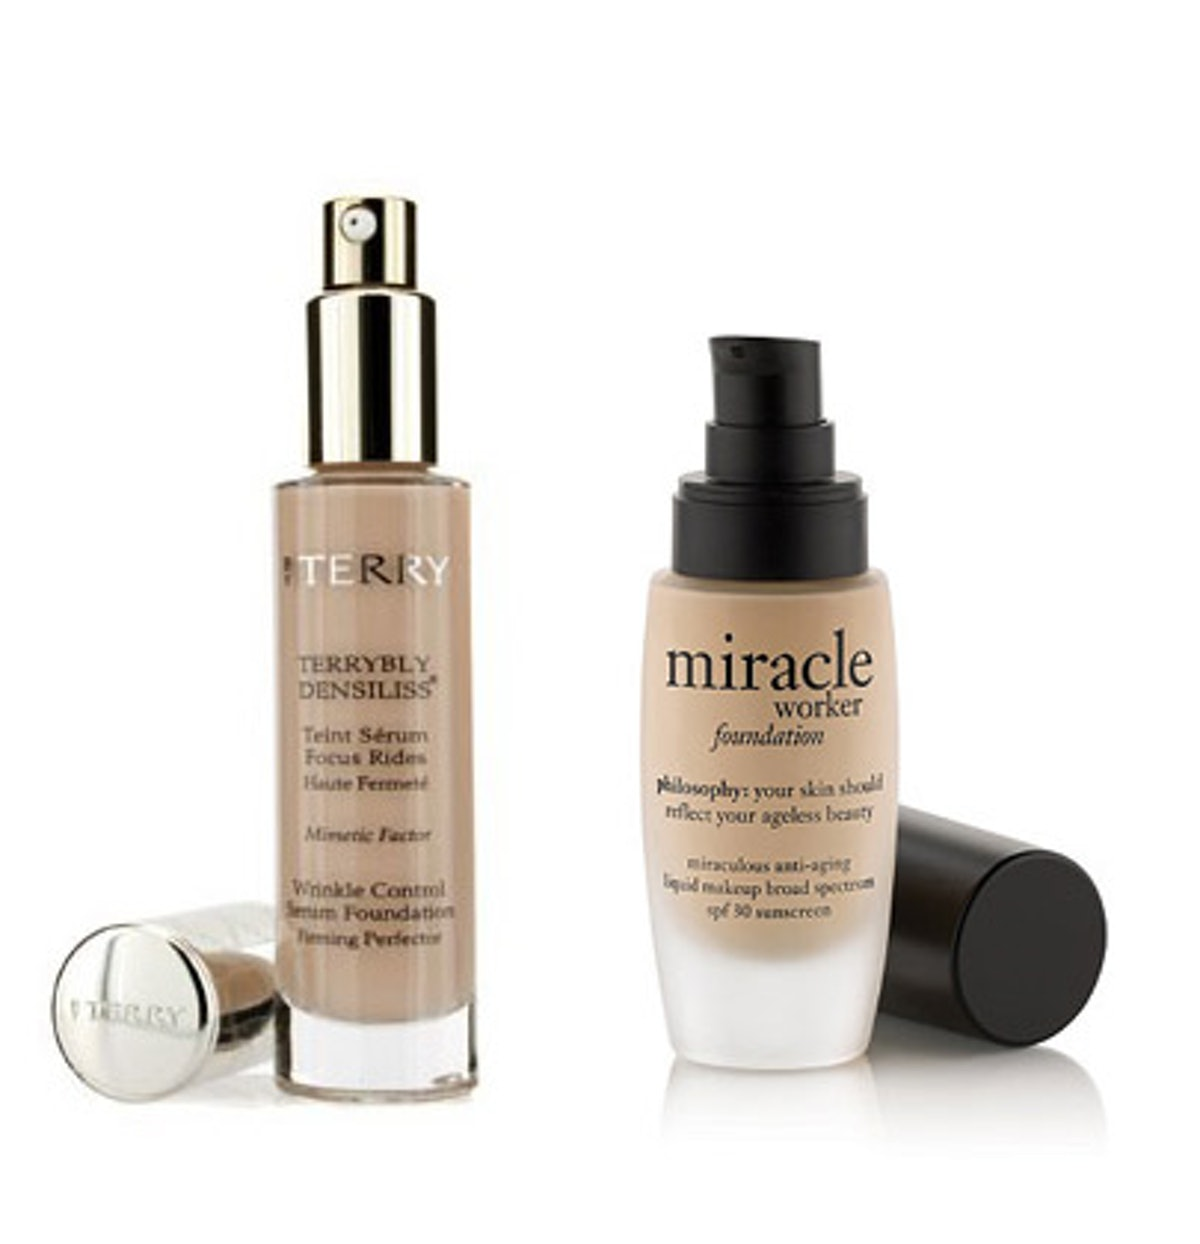 __Philosophy Miracle Worker__ __Anti-Aging Liquid Makeup, $38,__ __[sephora.com](http://rstyle.me/n/c47cy3w3n); By Terry Terrybly__ __Densiliss Wrinkle Control__ __Serum Foundation,__ $115, [barneys.com](http://rstyle.me/n/eskg23w3n).